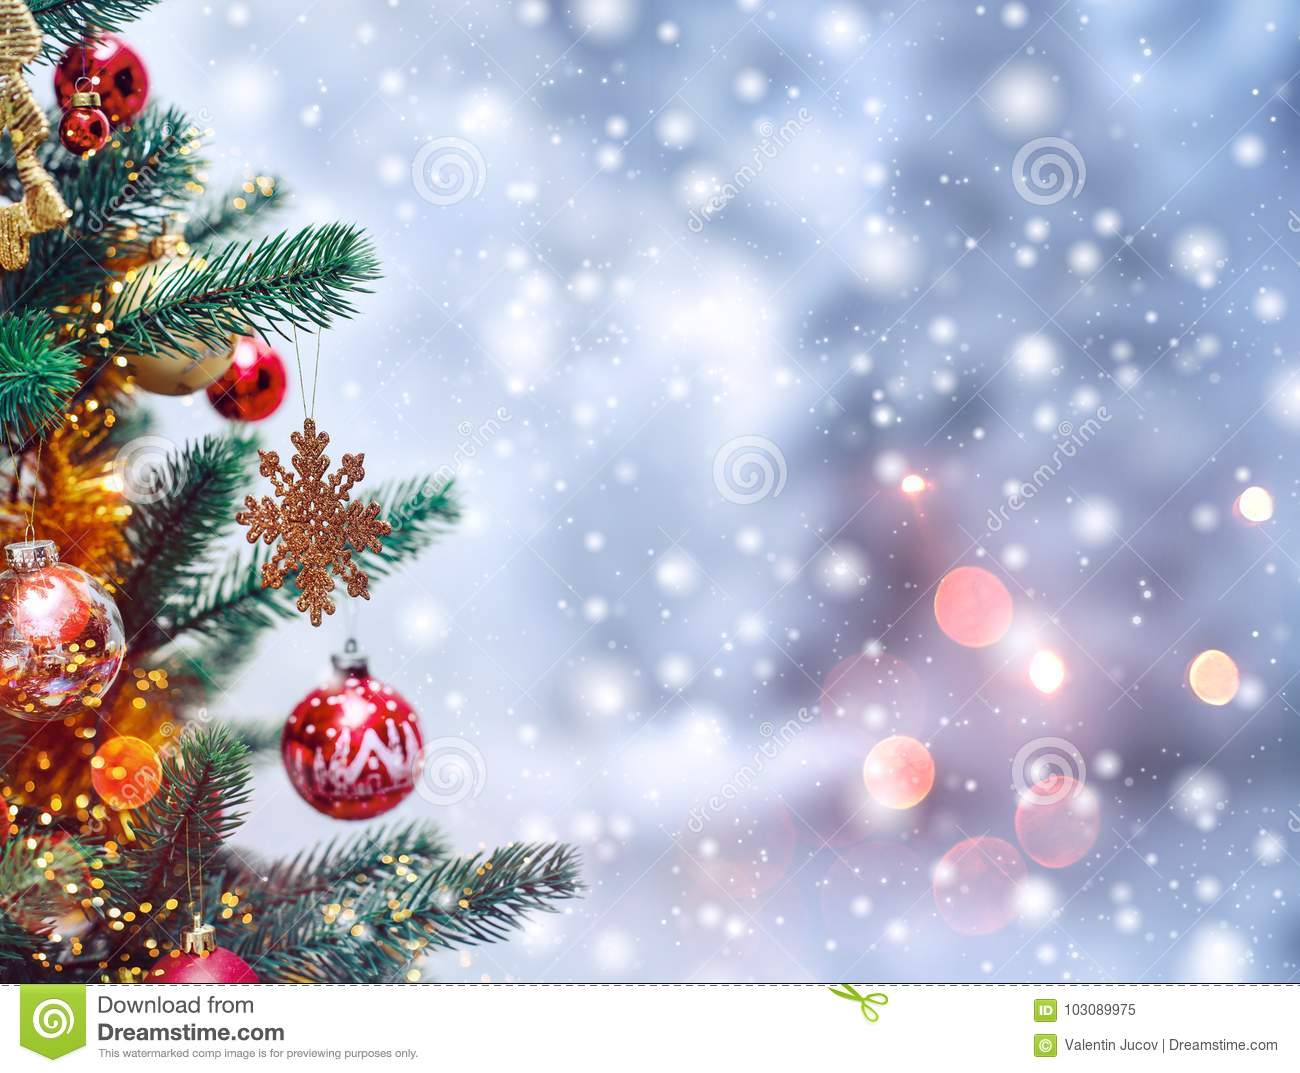 Christmas Tree Backgrounds.Christmas Tree Background And Christmas Decorations With